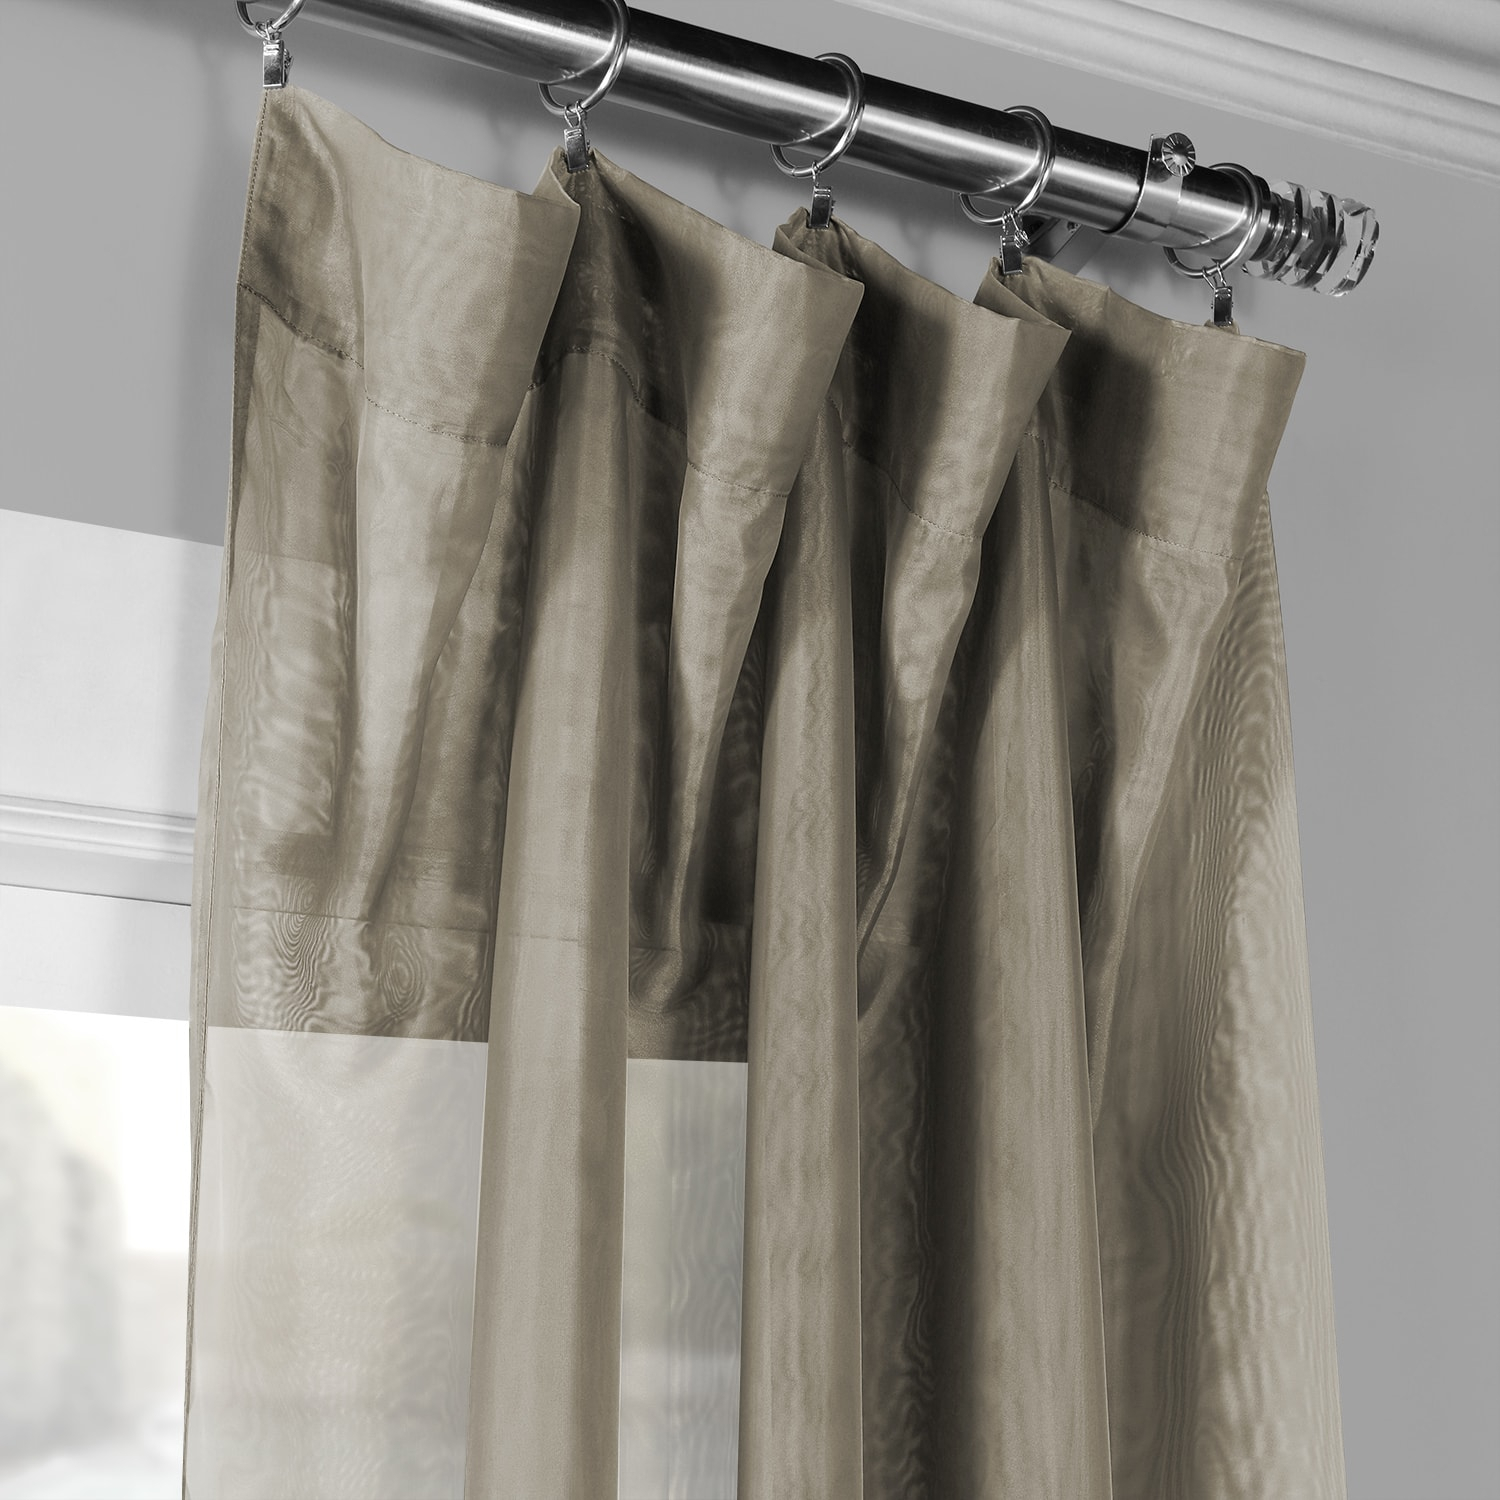 Signature Museum Grey Sheer Curtain Intended For Signature White Double Layer Sheer Curtain Panels (View 17 of 30)